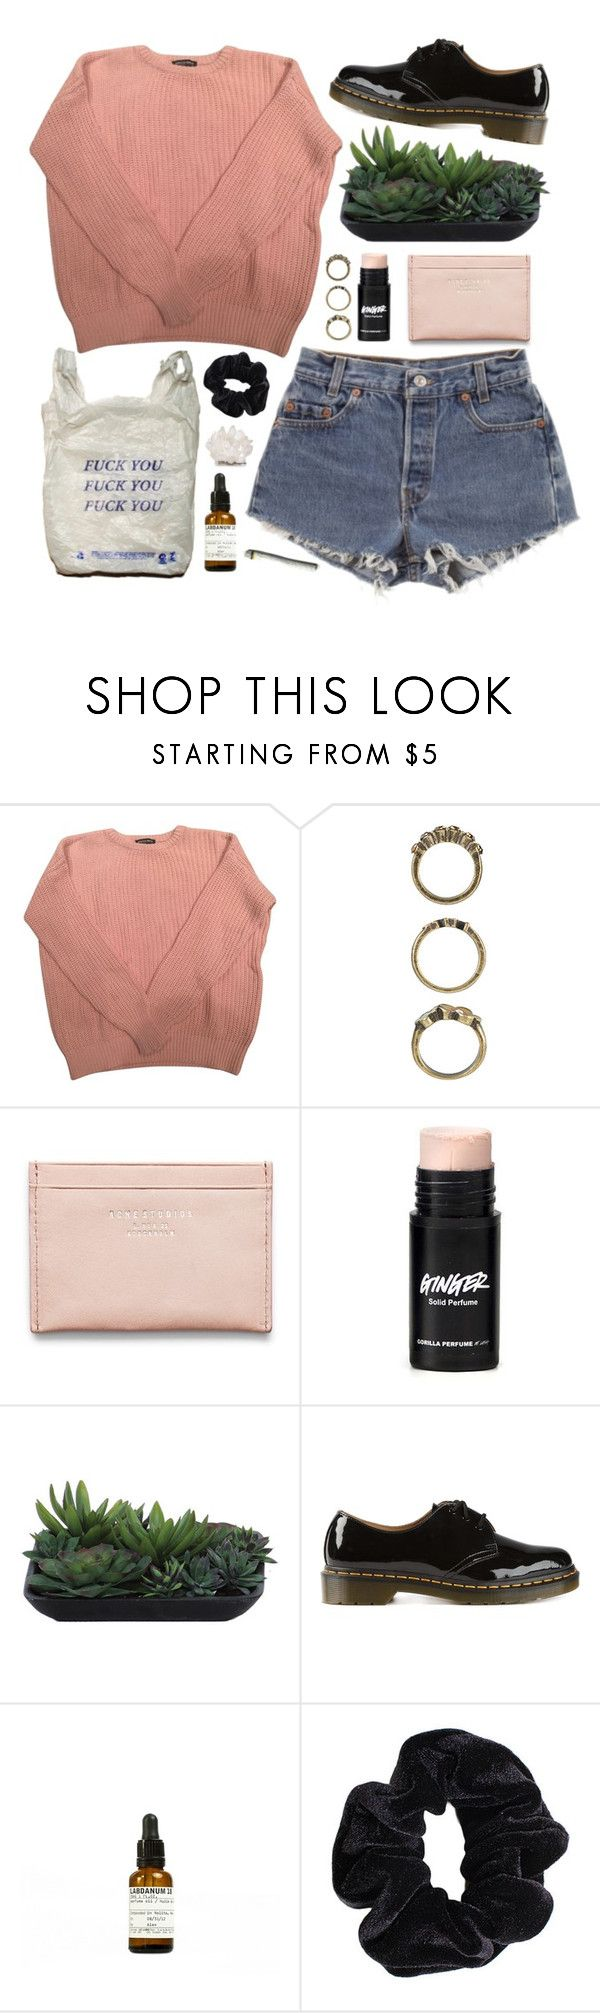 """YOU'RE AN ENERGY VOID"" by little-wild ❤ liked on Polyvore featuring American Apparel, Forever 21, Levi's, Acne Studios, Lux-Art Silks, Dr. Martens, Le Labo and Kathryn McCoy Design"